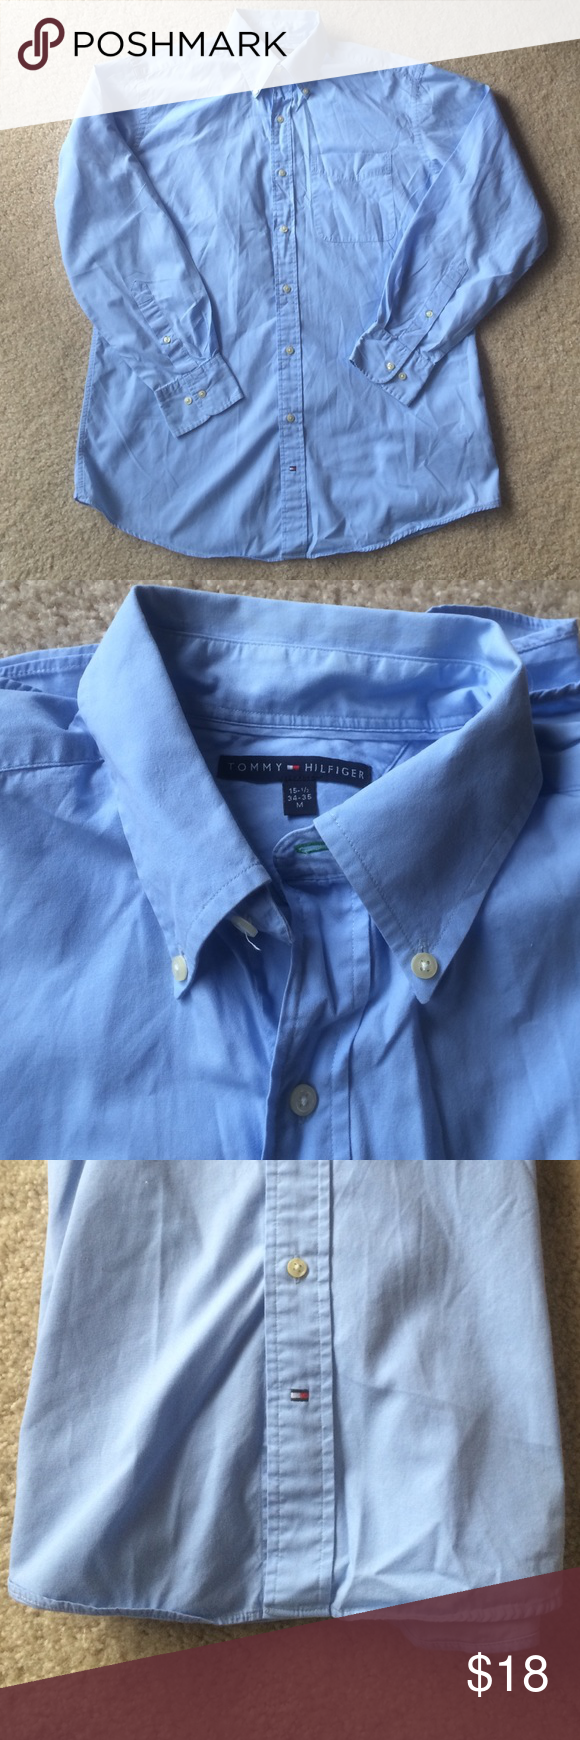 Men's Tommy Hilfiger Button Up Size M Sky blue Tommy Hilfiger button up works with both suits for work and khakis or shorts for a more casual look. See picture of tag for neck sizing! Tommy Hilfiger Shirts Dress Shirts